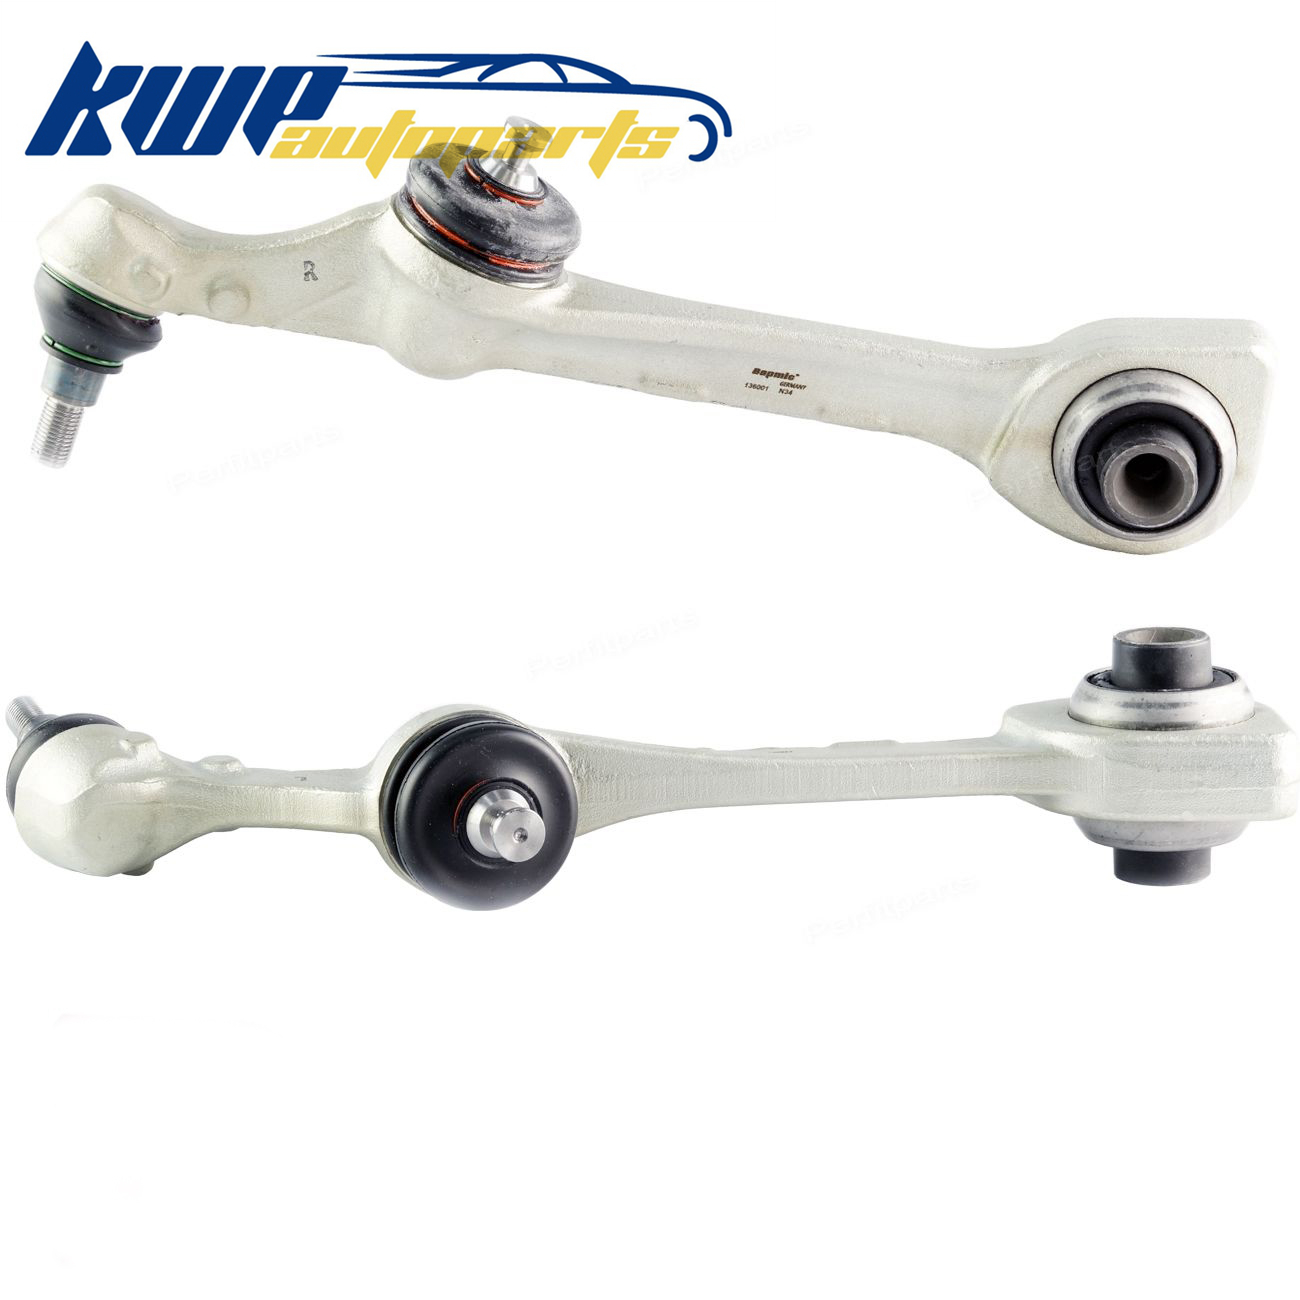 Control Arm Left and Right Front Lower Rearward For Mercedes W221 S400 S550 600 S63 S65 AMG 07-13 #221 330 8207 ; 221 330 8107 решетка на капот w221 amg в киеве